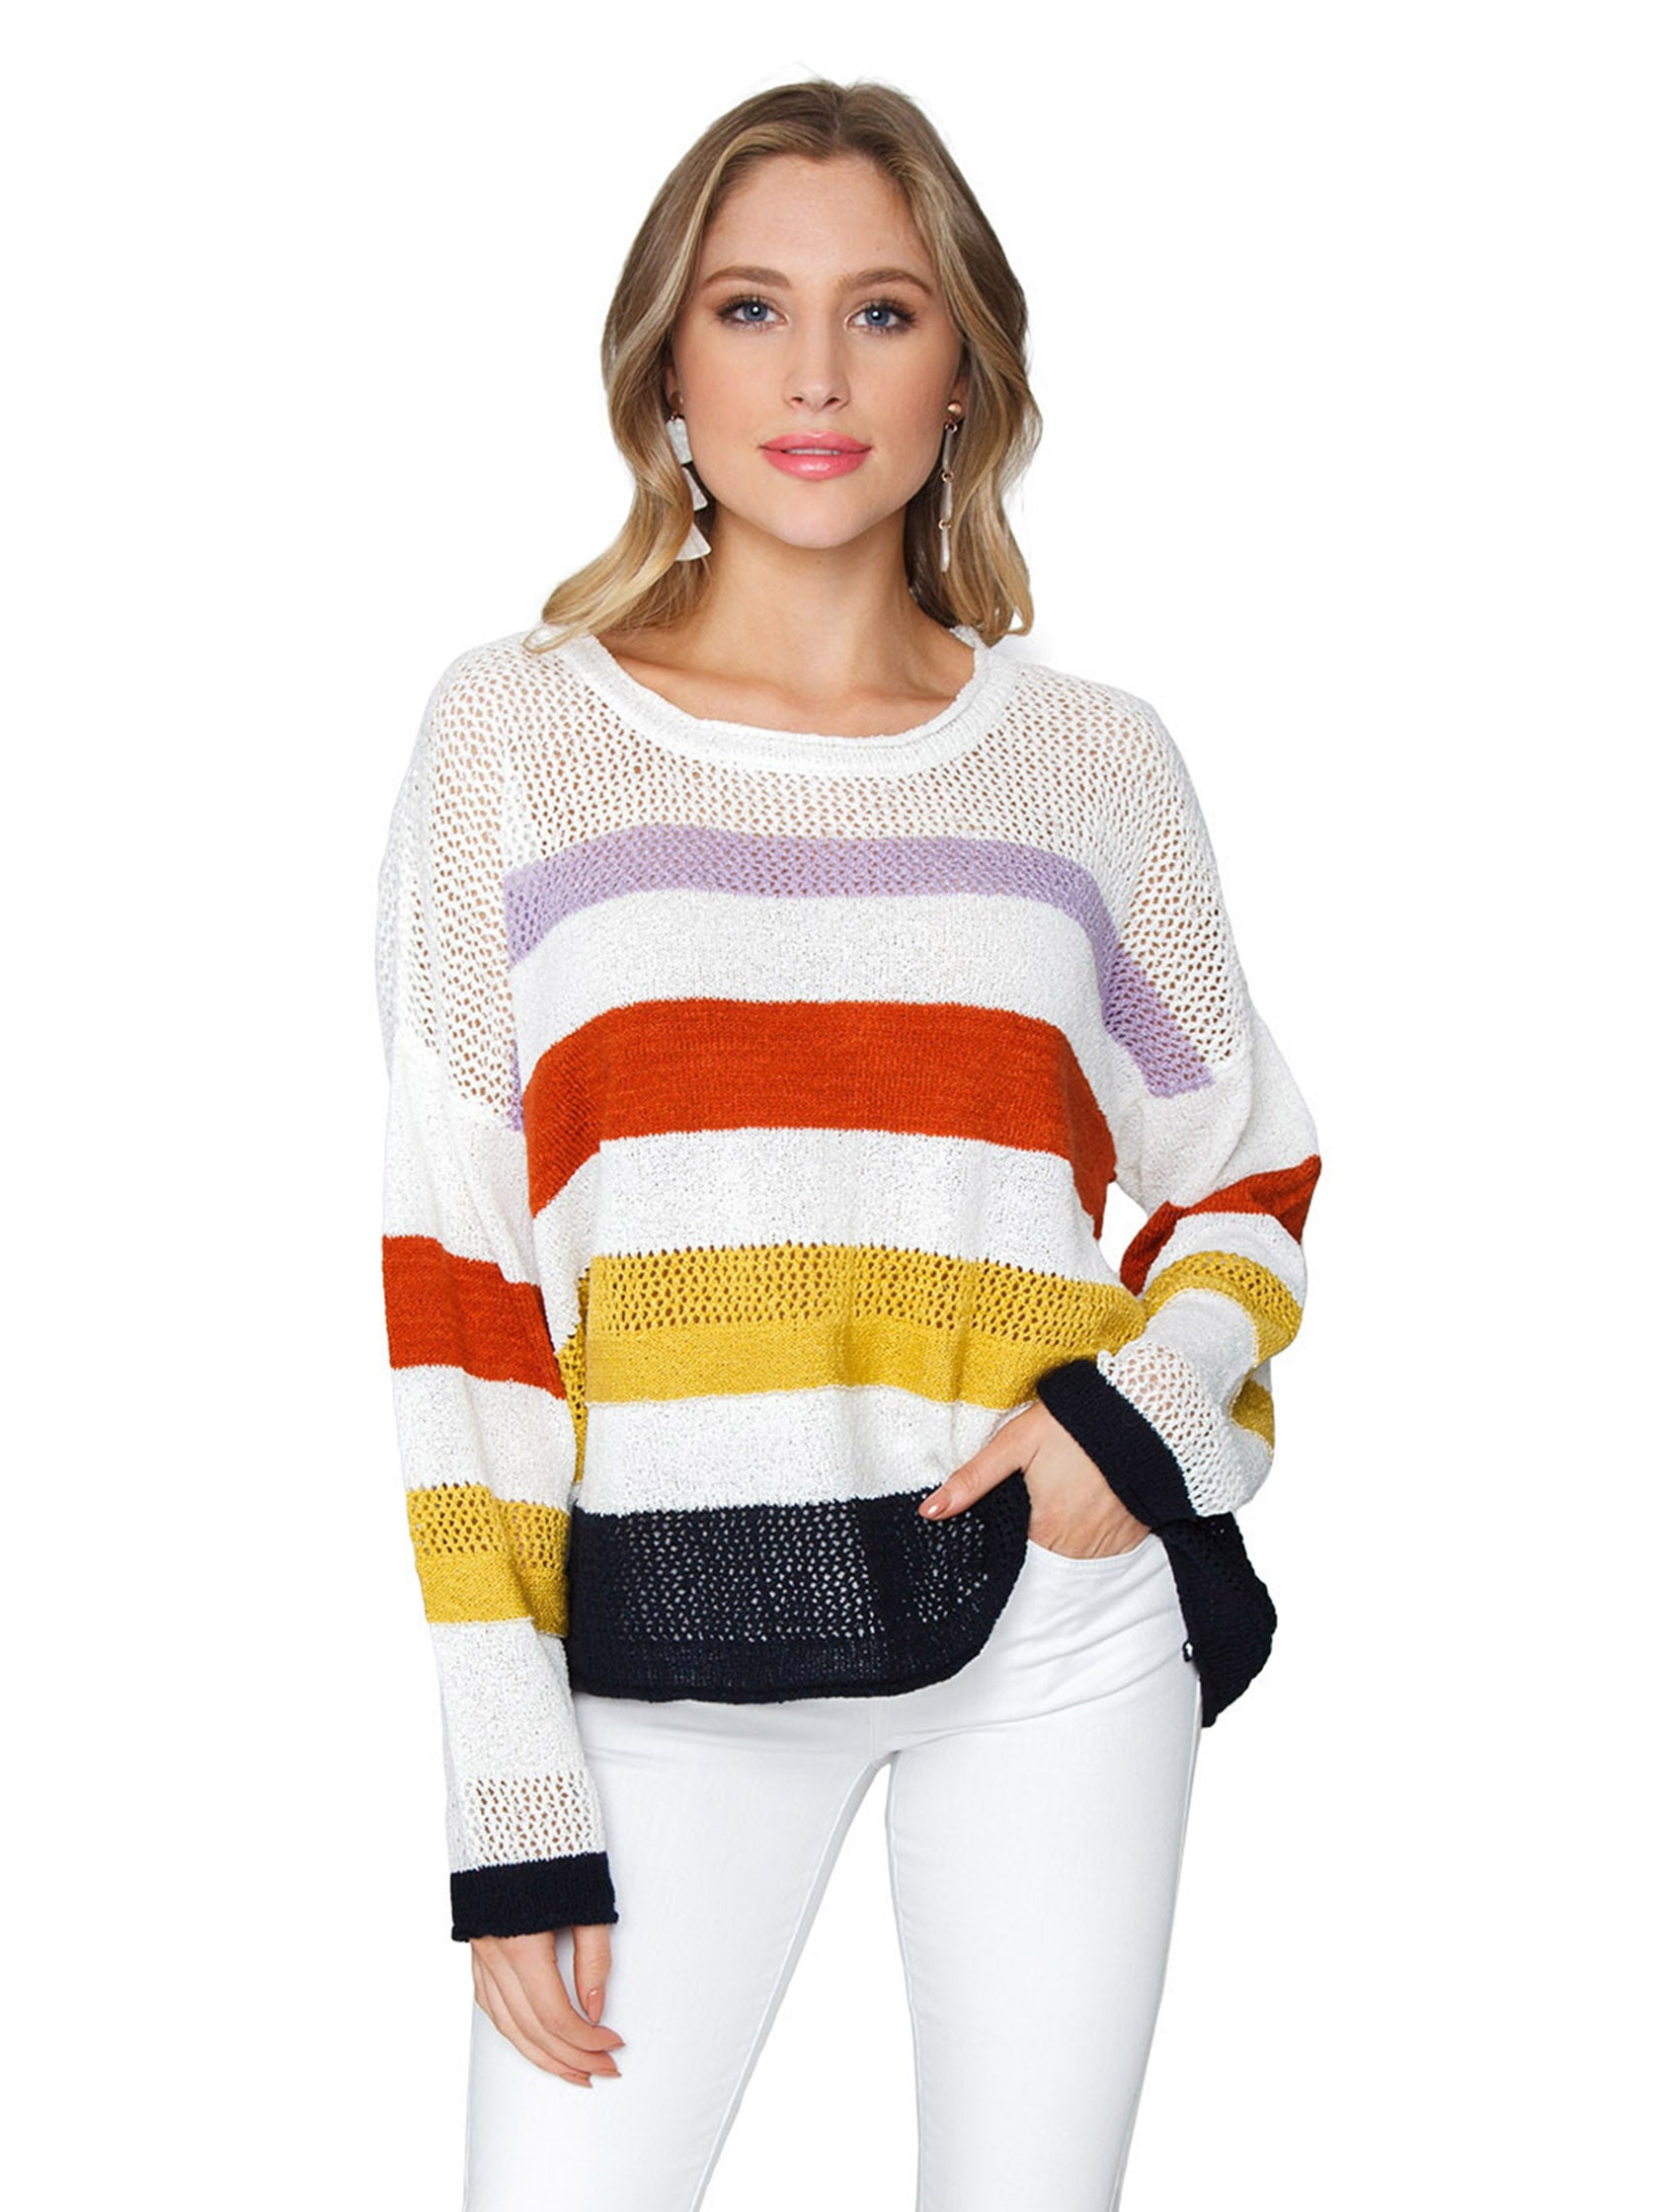 Woman wearing a sweater rental from FashionPass called Lightweight Stripe Sweater